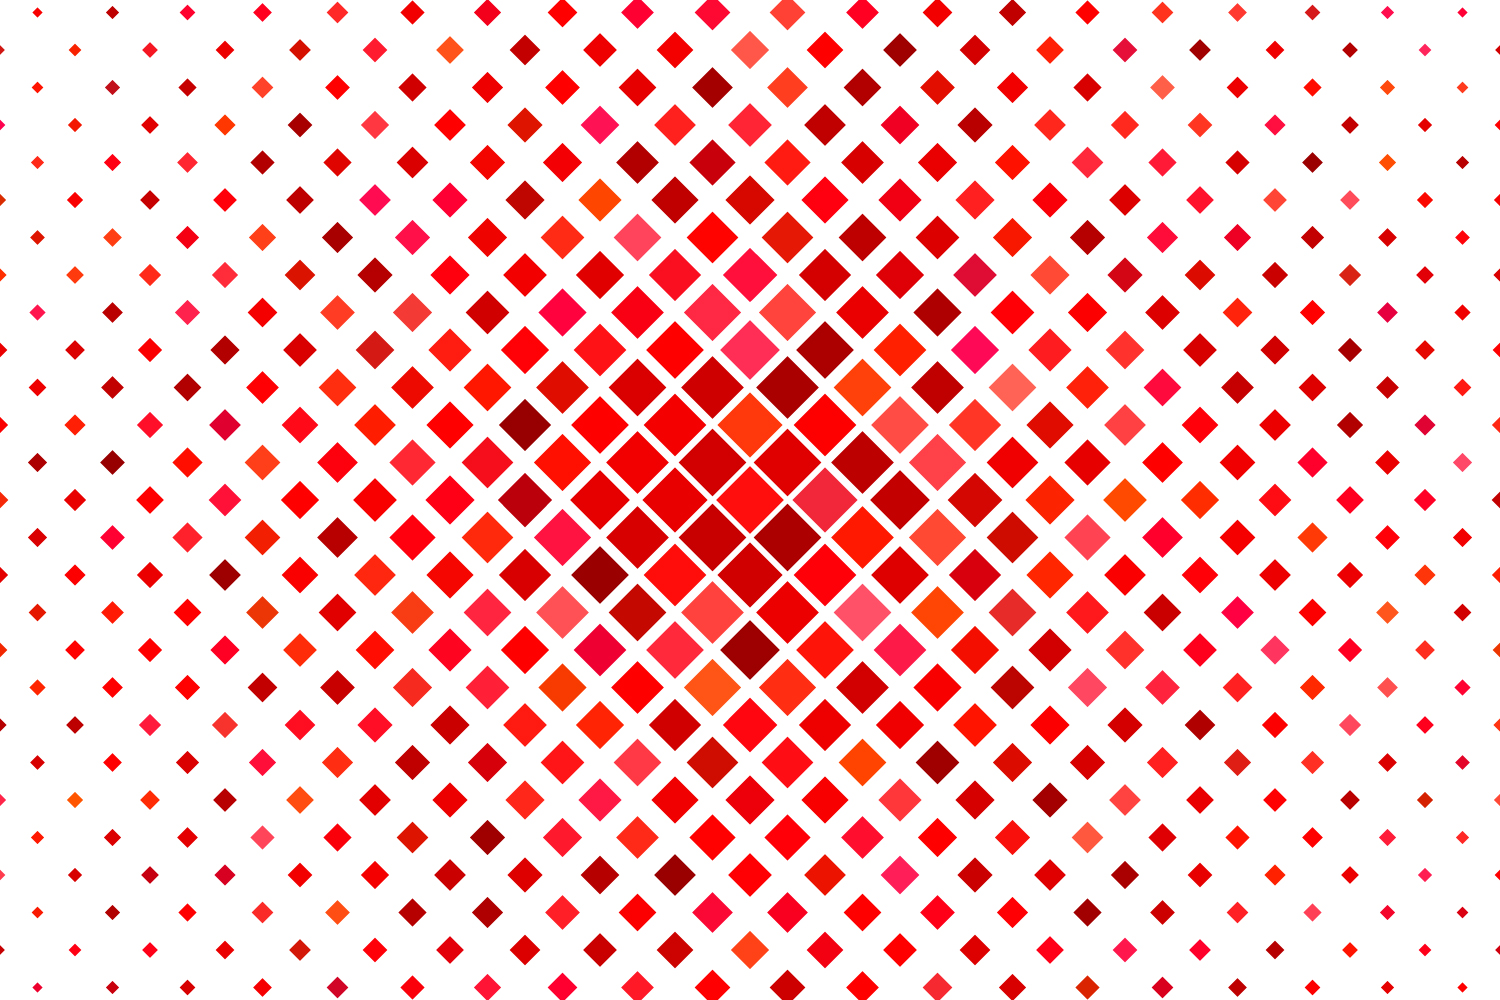 24 Red Square Patterns (AI, EPS, JPG 5000x5000) example image 2